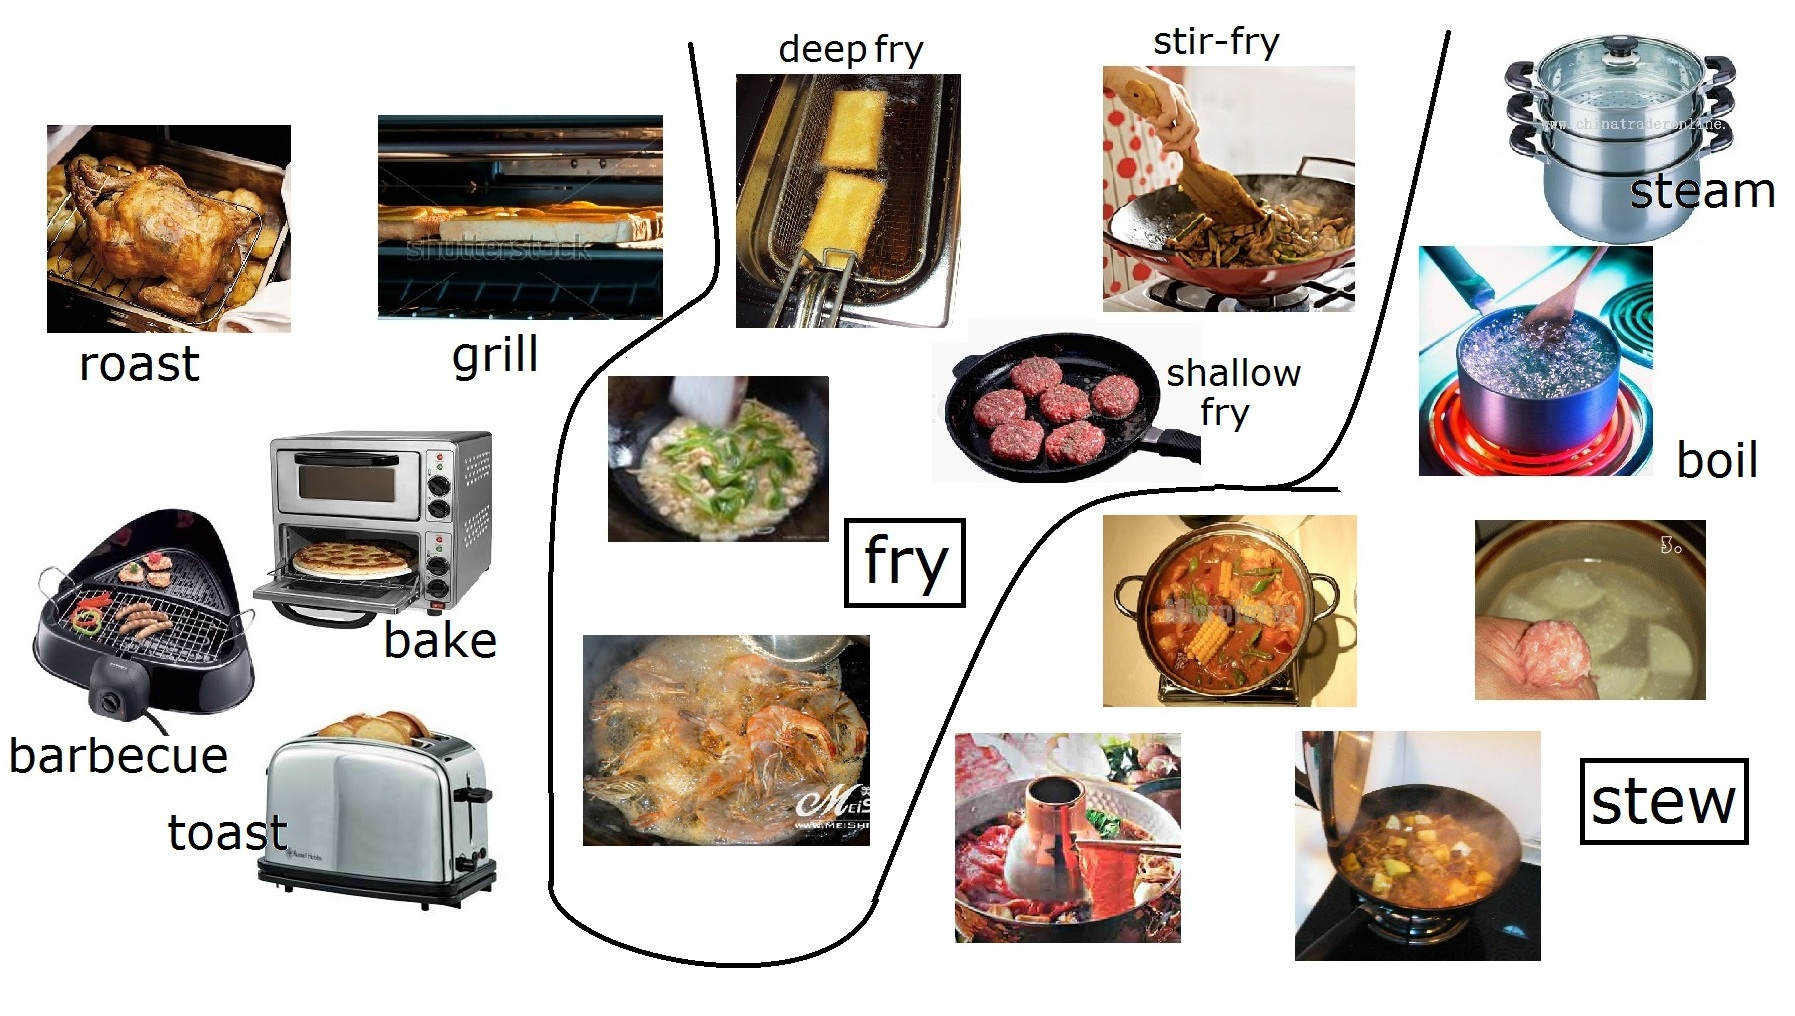 Categorisation Of Cooking Methods In English And Chinese